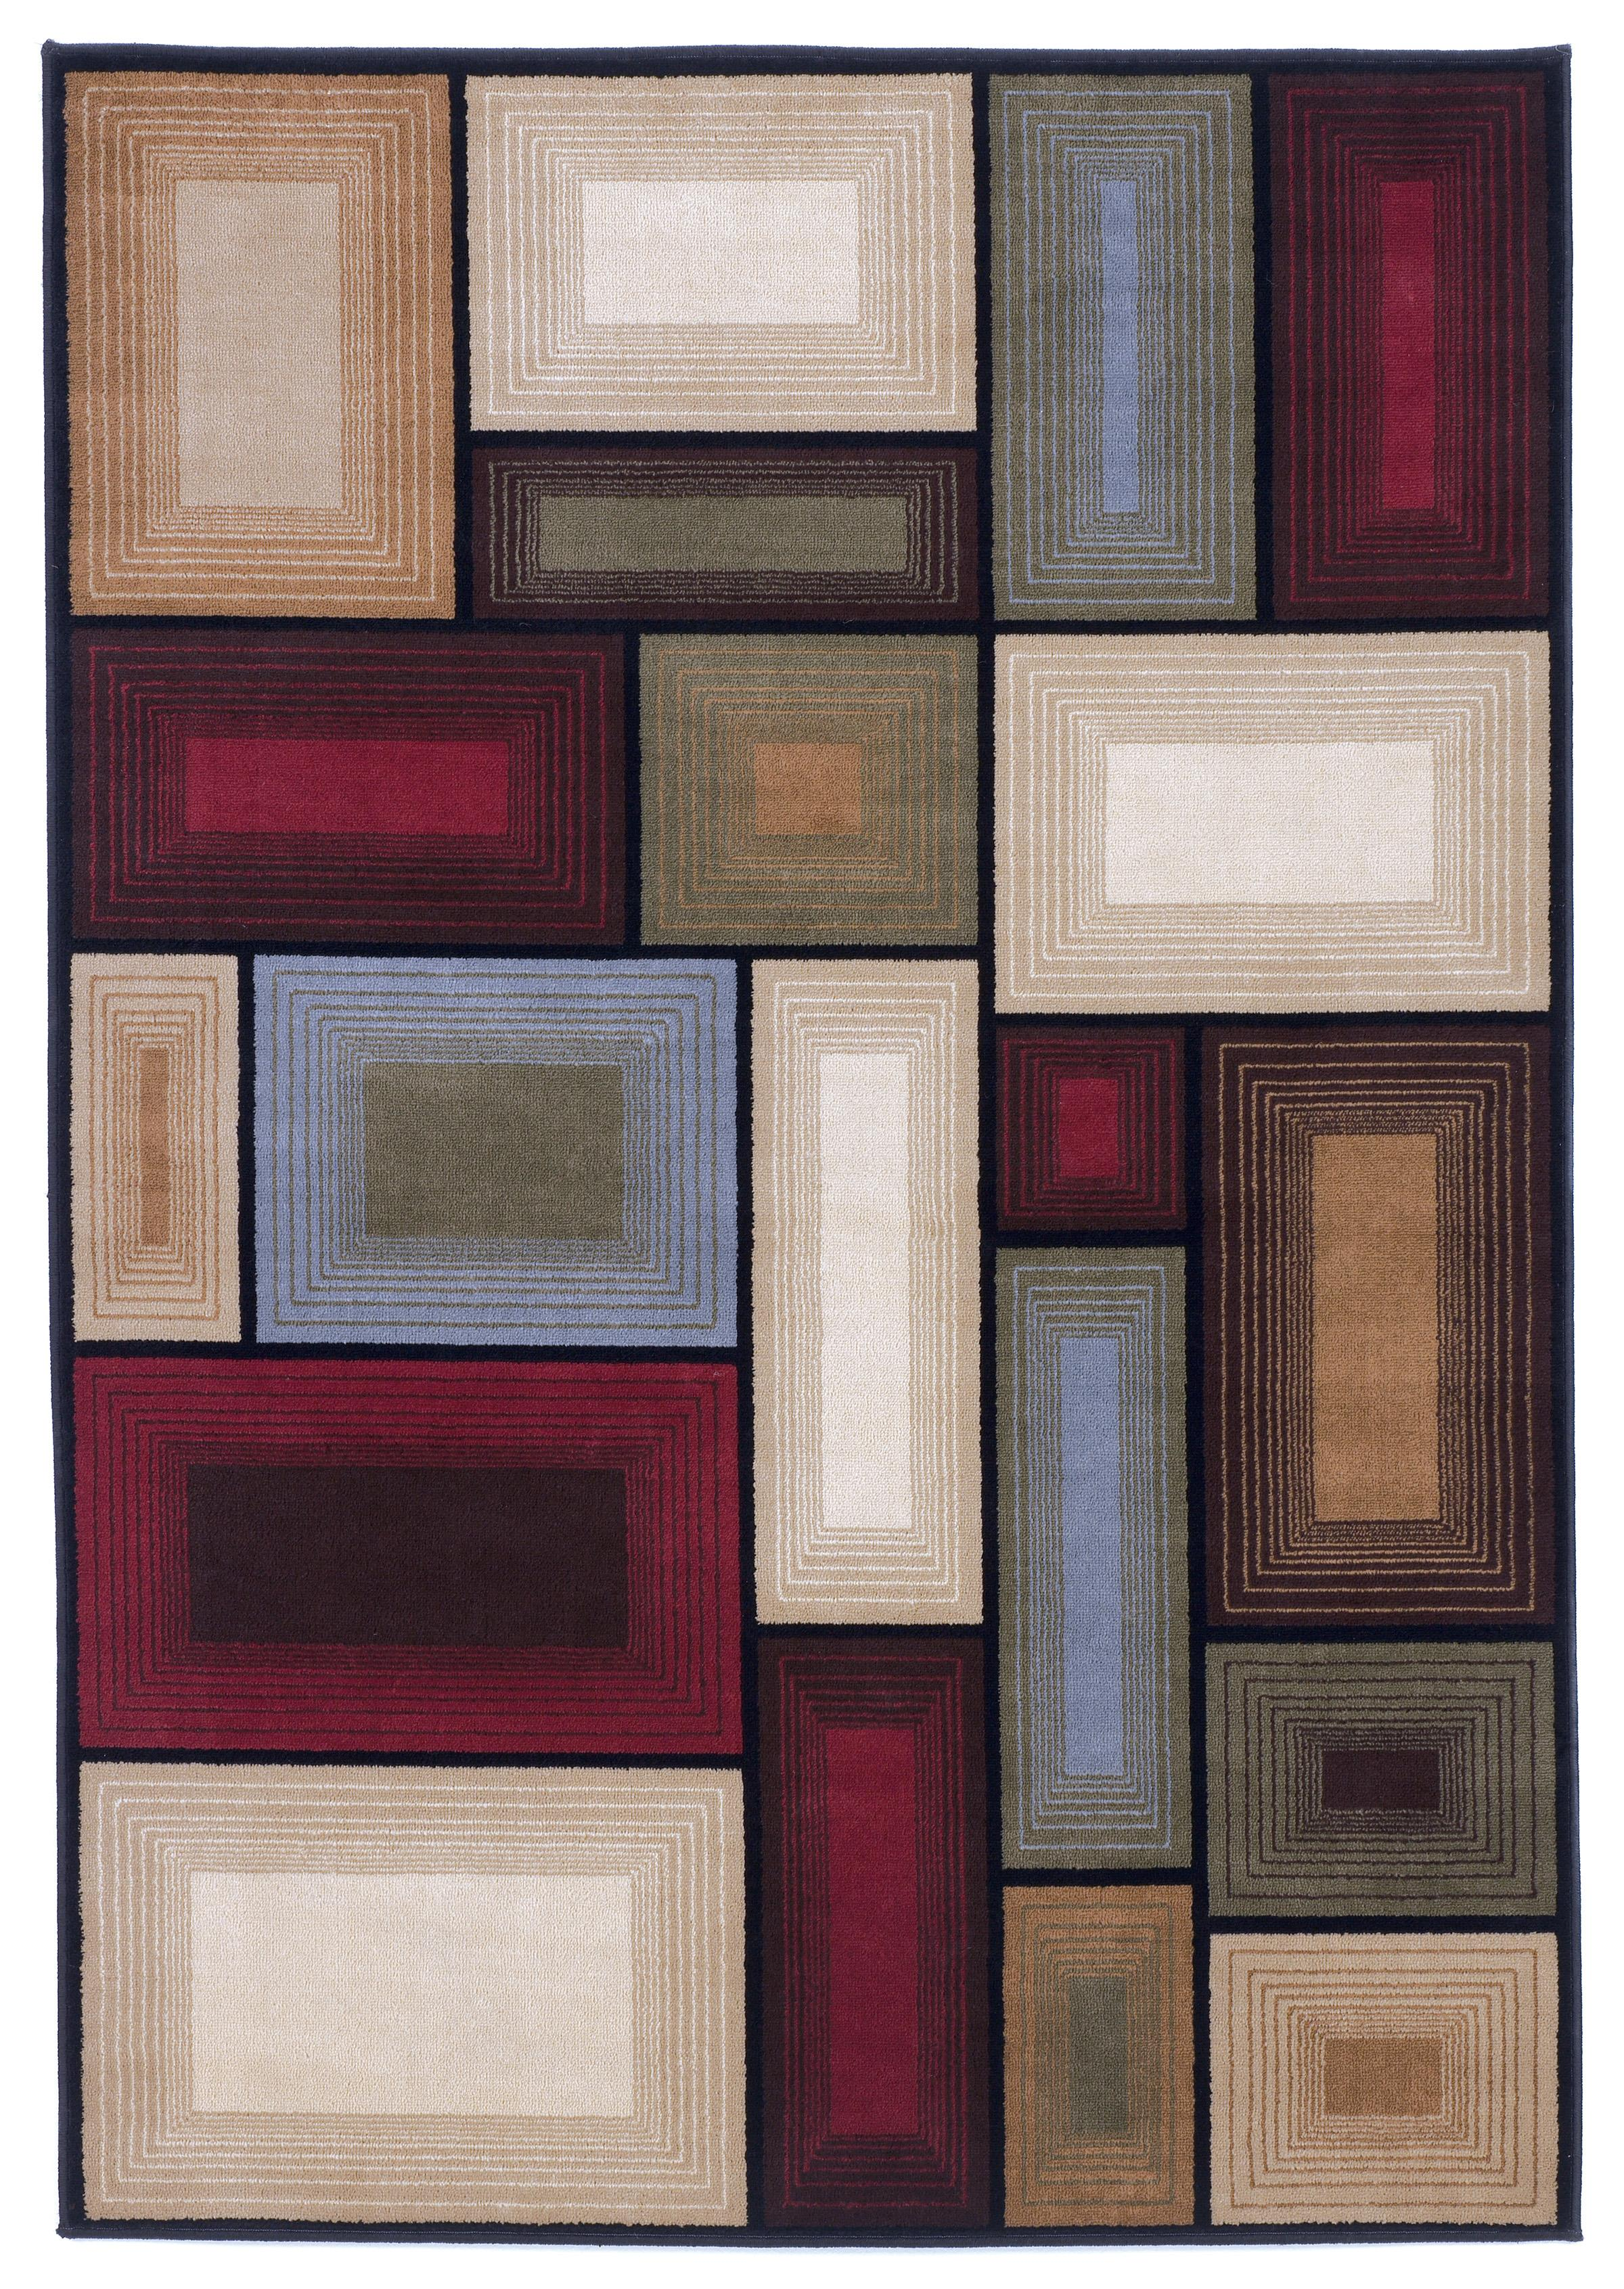 Signature Design by Ashley Contemporary Area Rugs Prism - Multi Rug - Item Number: R215002